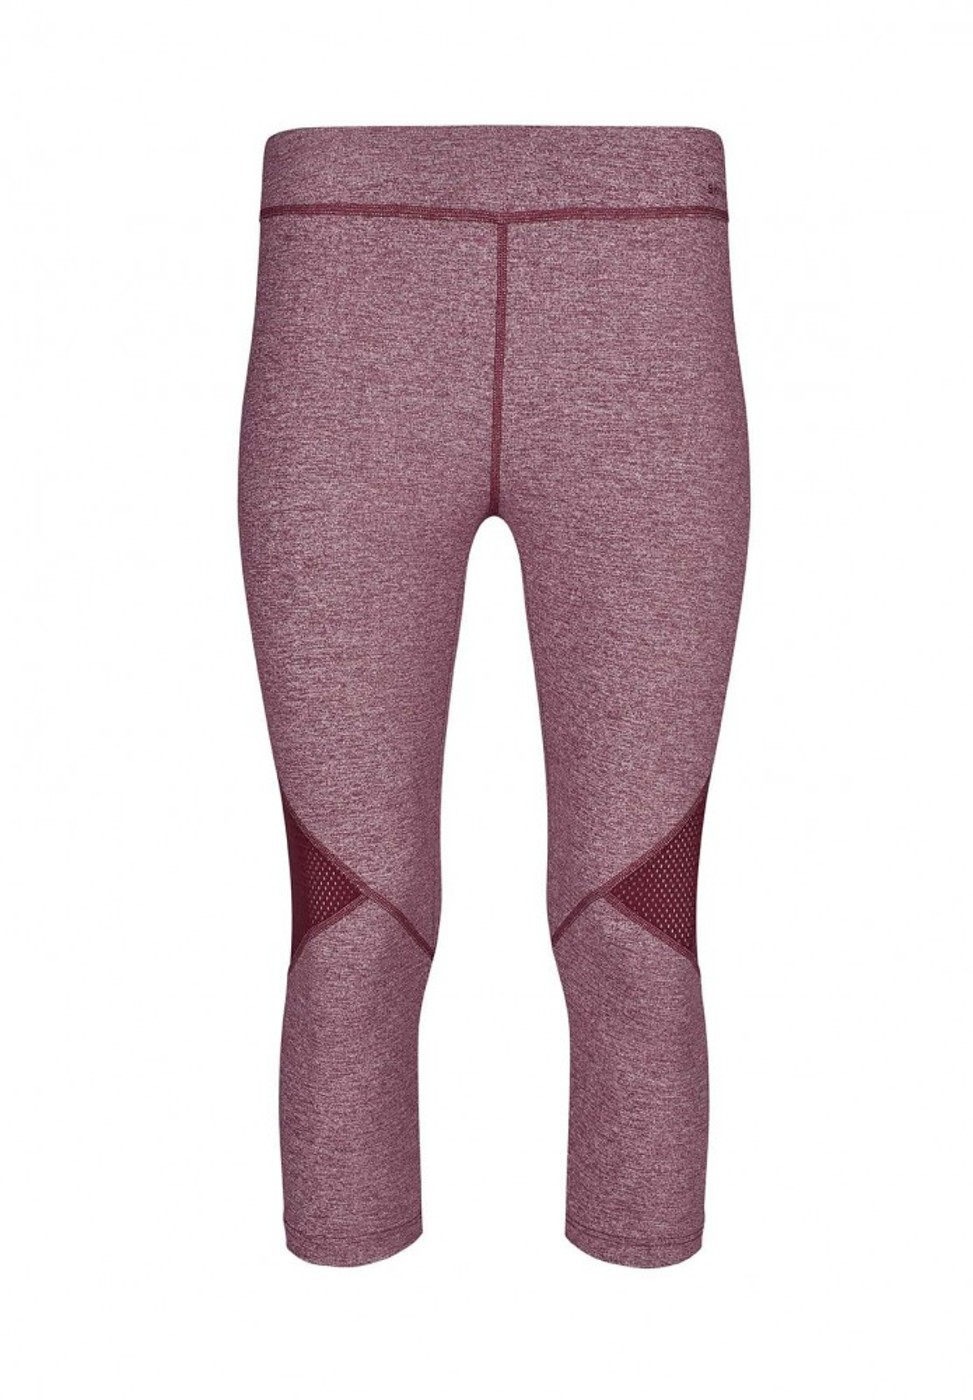 SKINY Leggings 3/4 - Damen